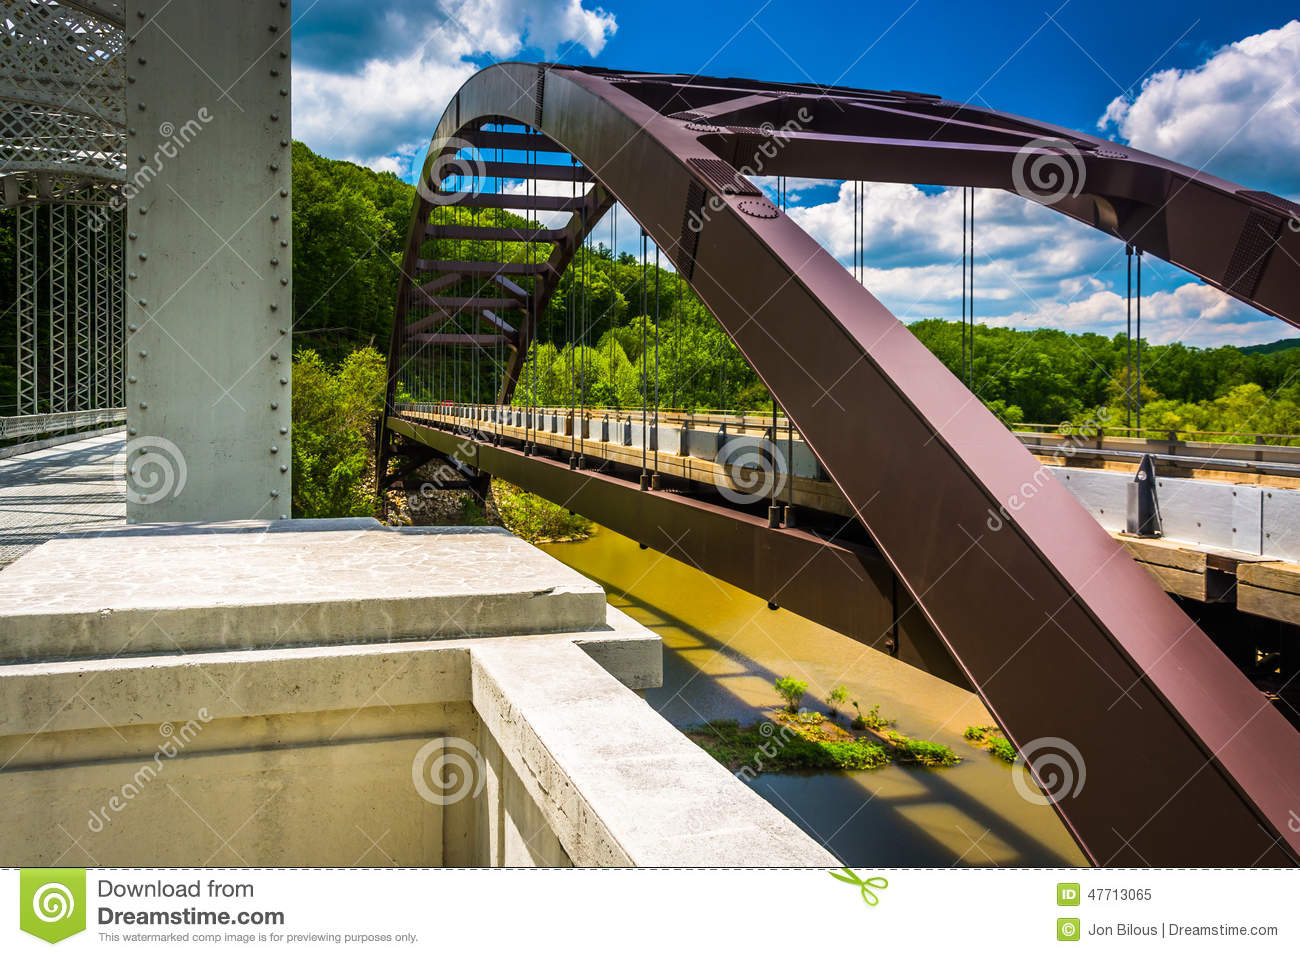 Bridges over Loch Raven Reservoir, in Baltimore, Maryland.